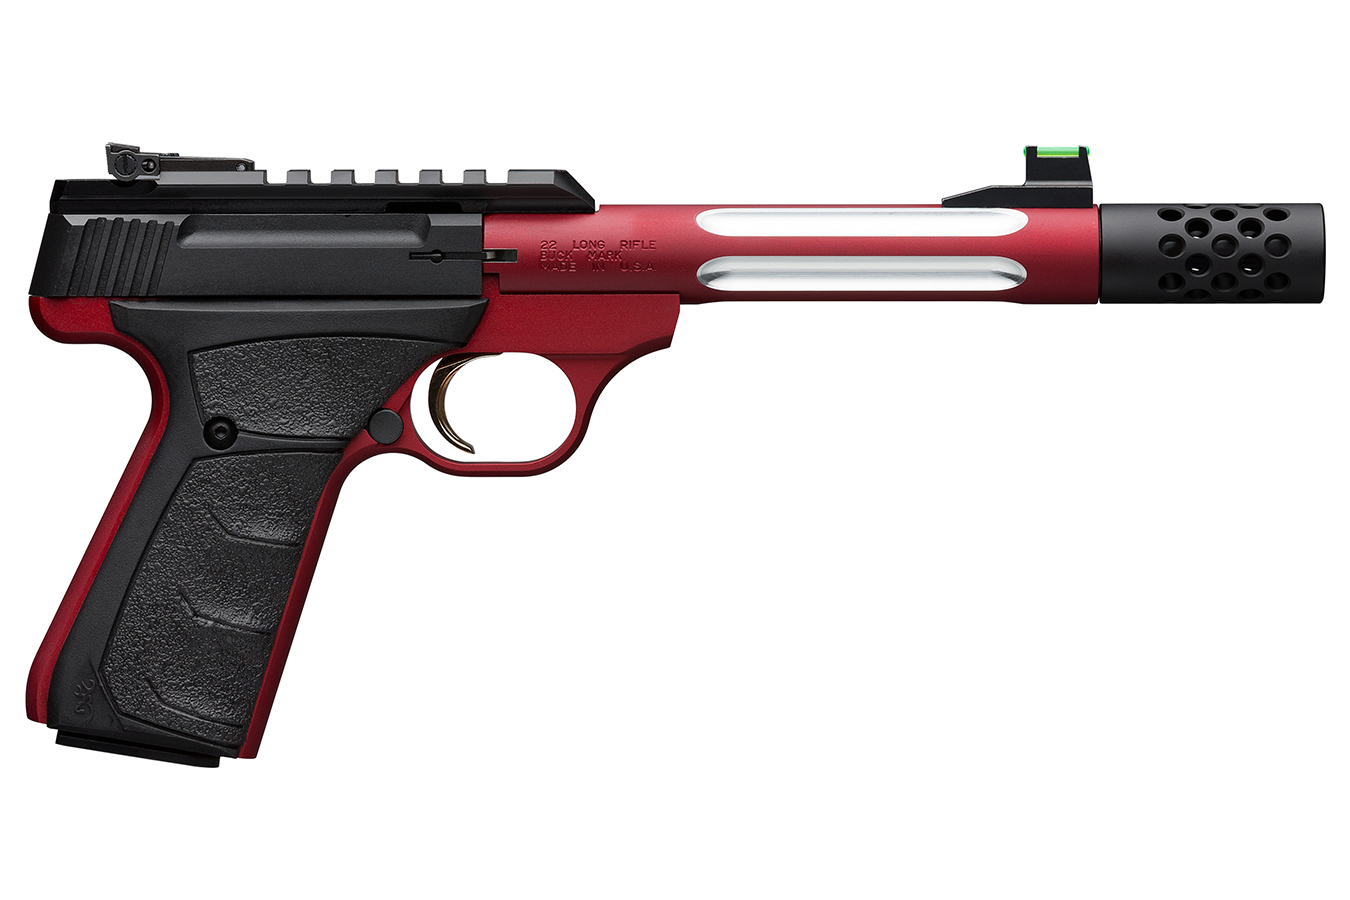 No. 26 Best Selling: BROWNING FIREARMS BUCK MARK PLUS LITE COMP 22LR 5.9 IN THREADED BBL RED ANODIZED FINISH